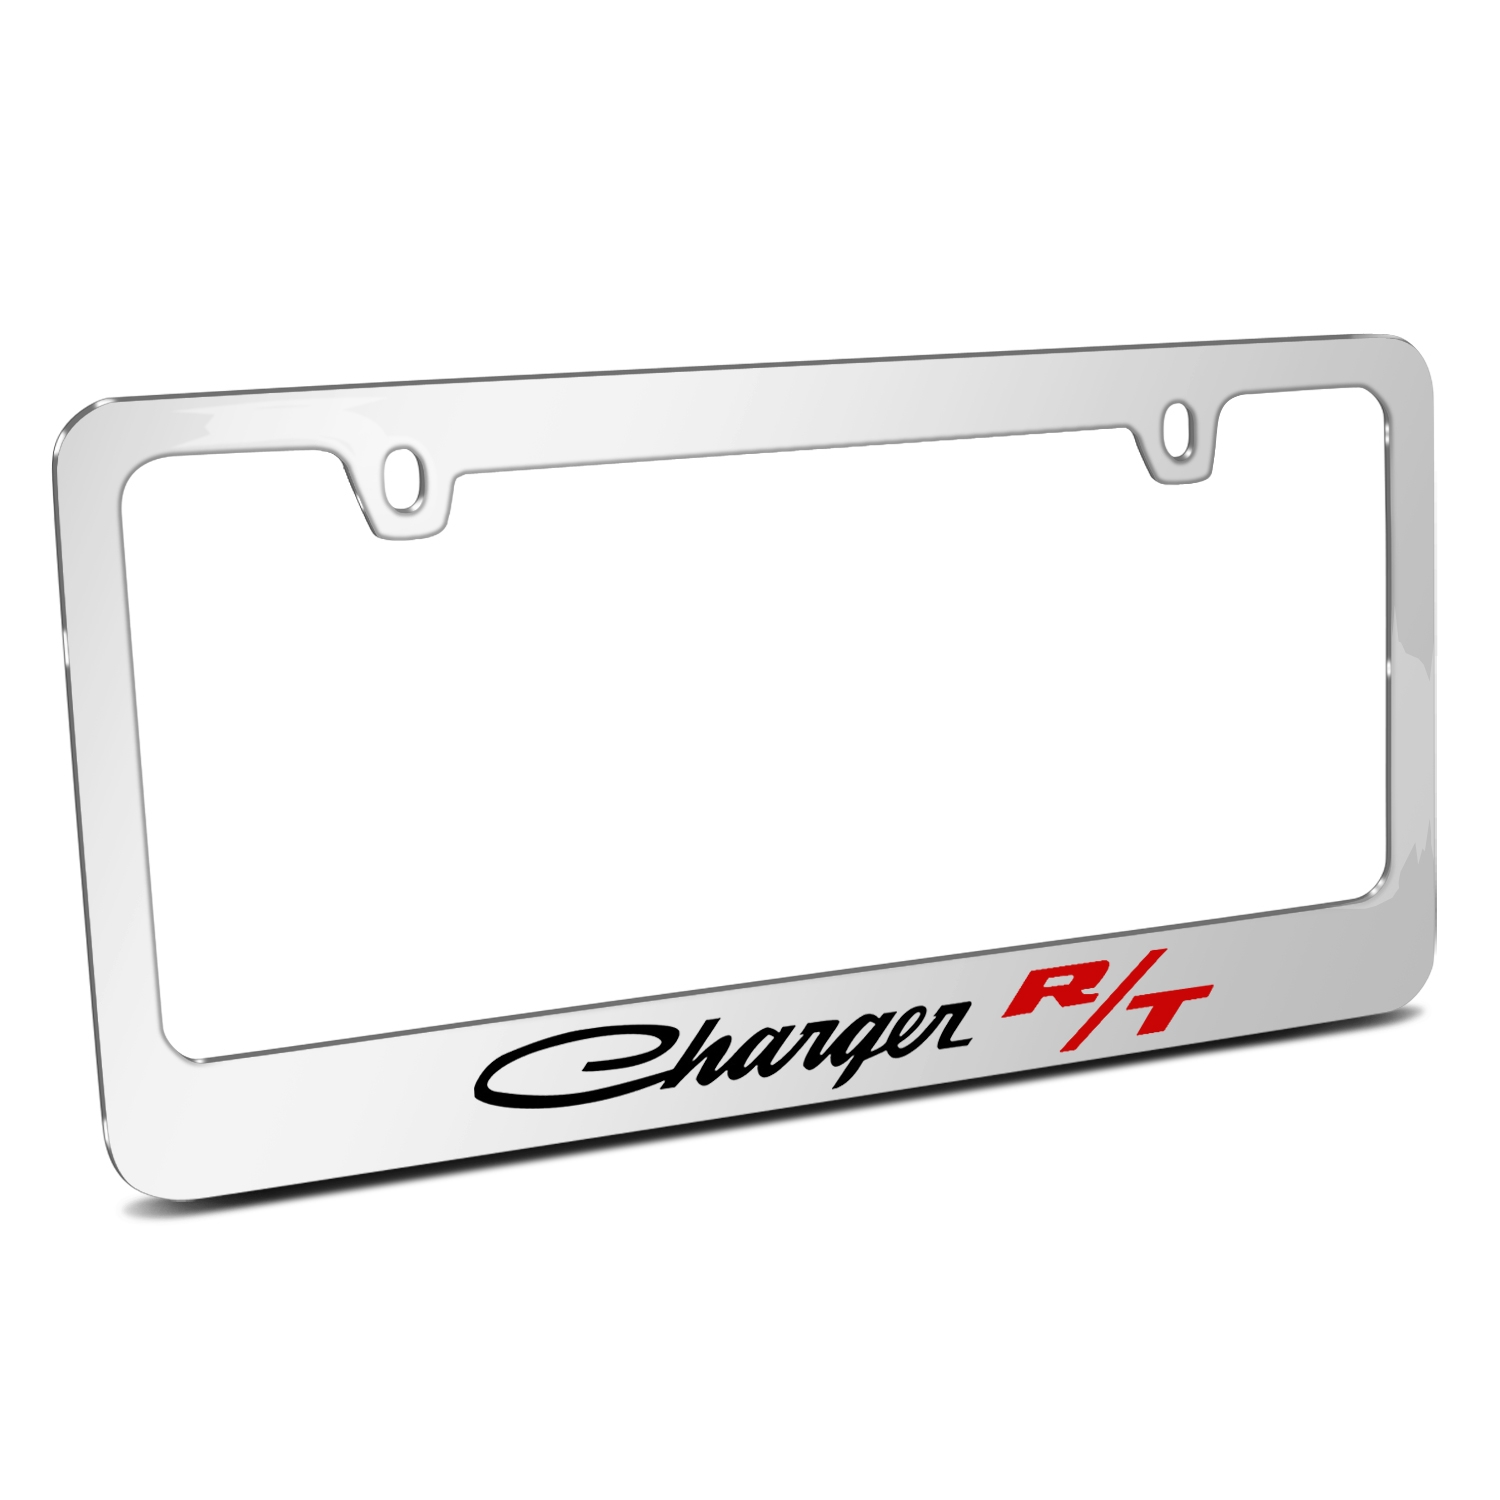 Dodge Charger R/T Classic Mirror Chrome Metal License Plate Frame